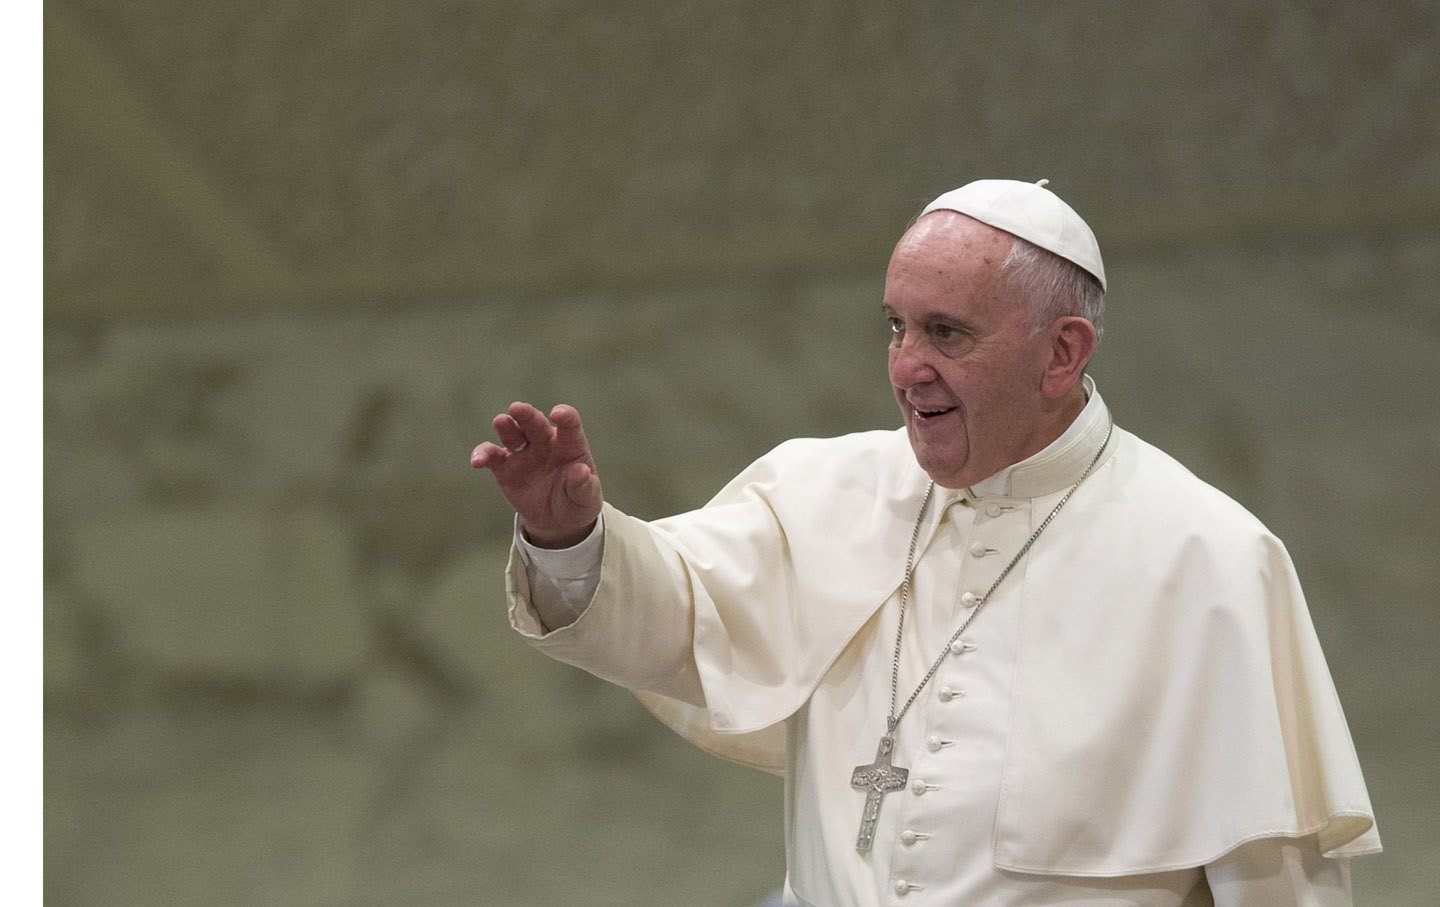 Pope Francis arrives at his weekly audience at the Vatican.